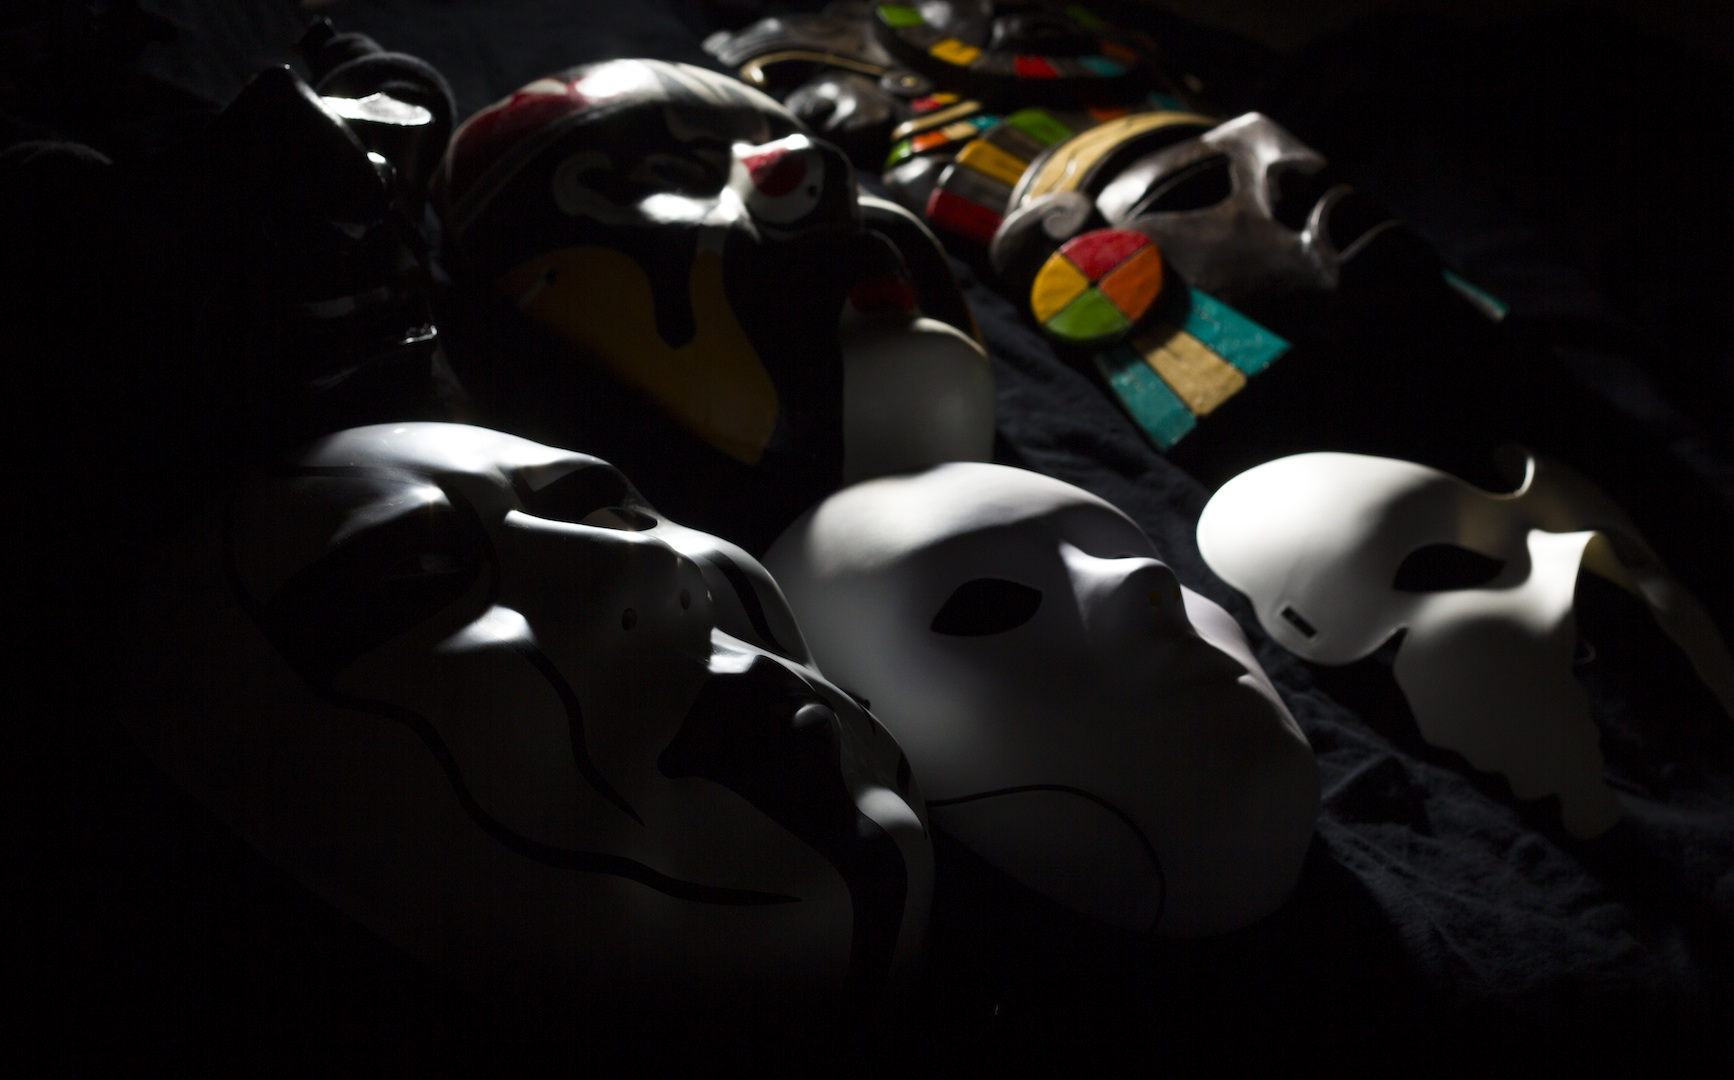 Part of my mask collection